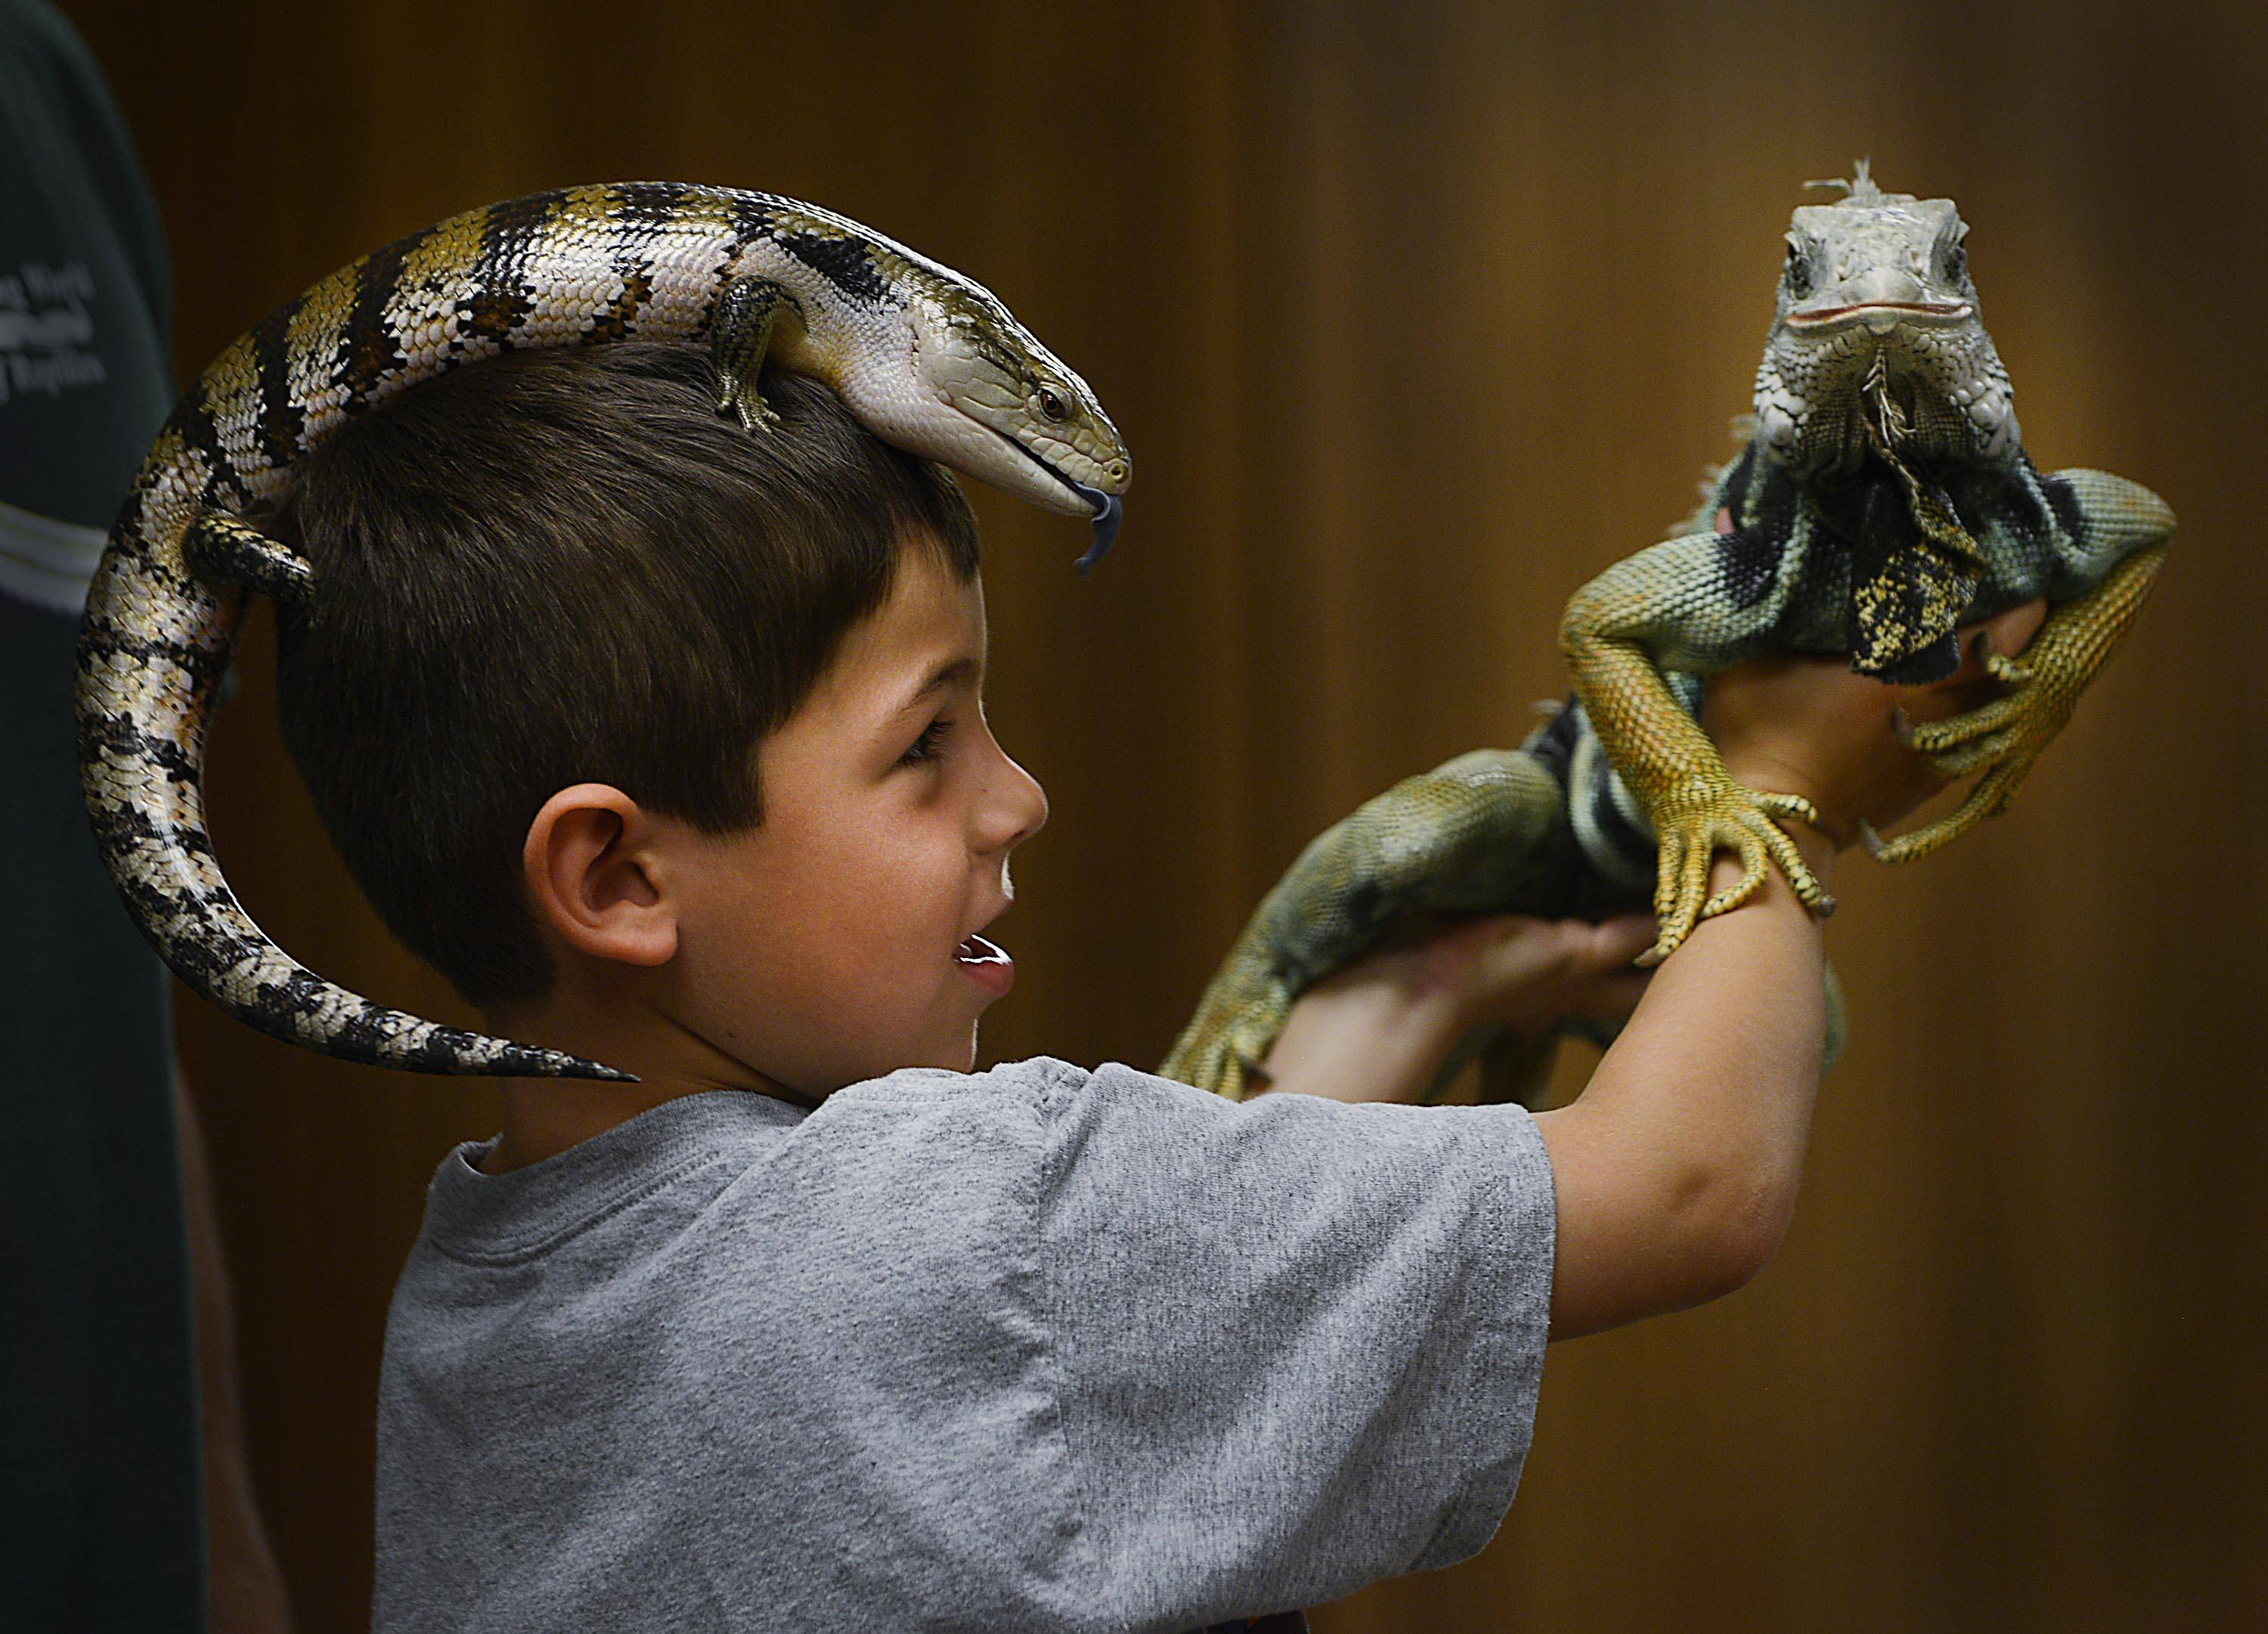 Luke Gadomski, 6, of St. Charles, holds a green iguana while a blue tongue skink sits on his head Monday during a program by Dave DiNaso's Traveling World of Reptiles at the St. Charles Public Library.